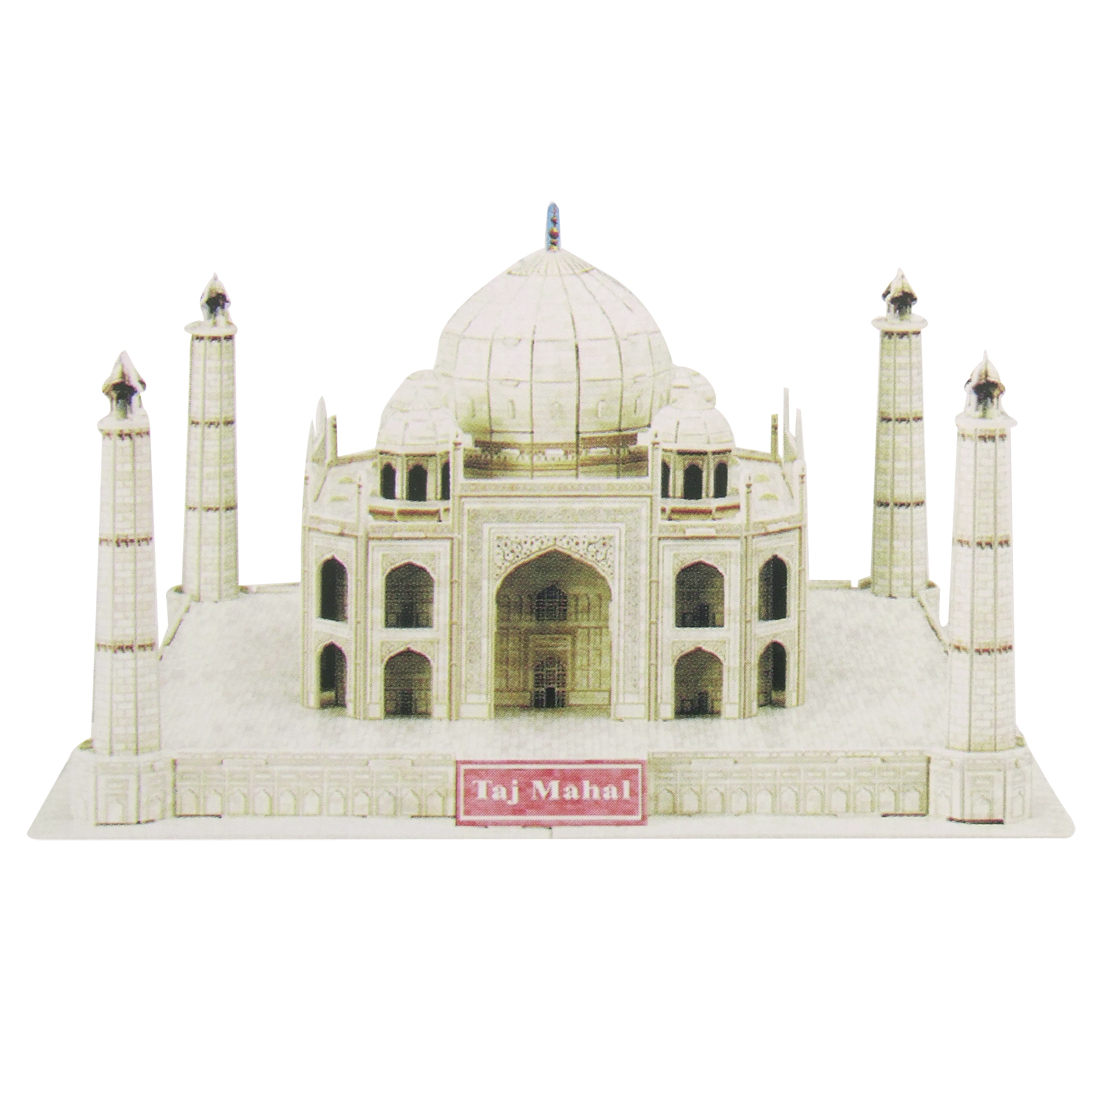 Taj Mahal Model 3D DIY 55 Pieces Foam Children Puzzle Toy